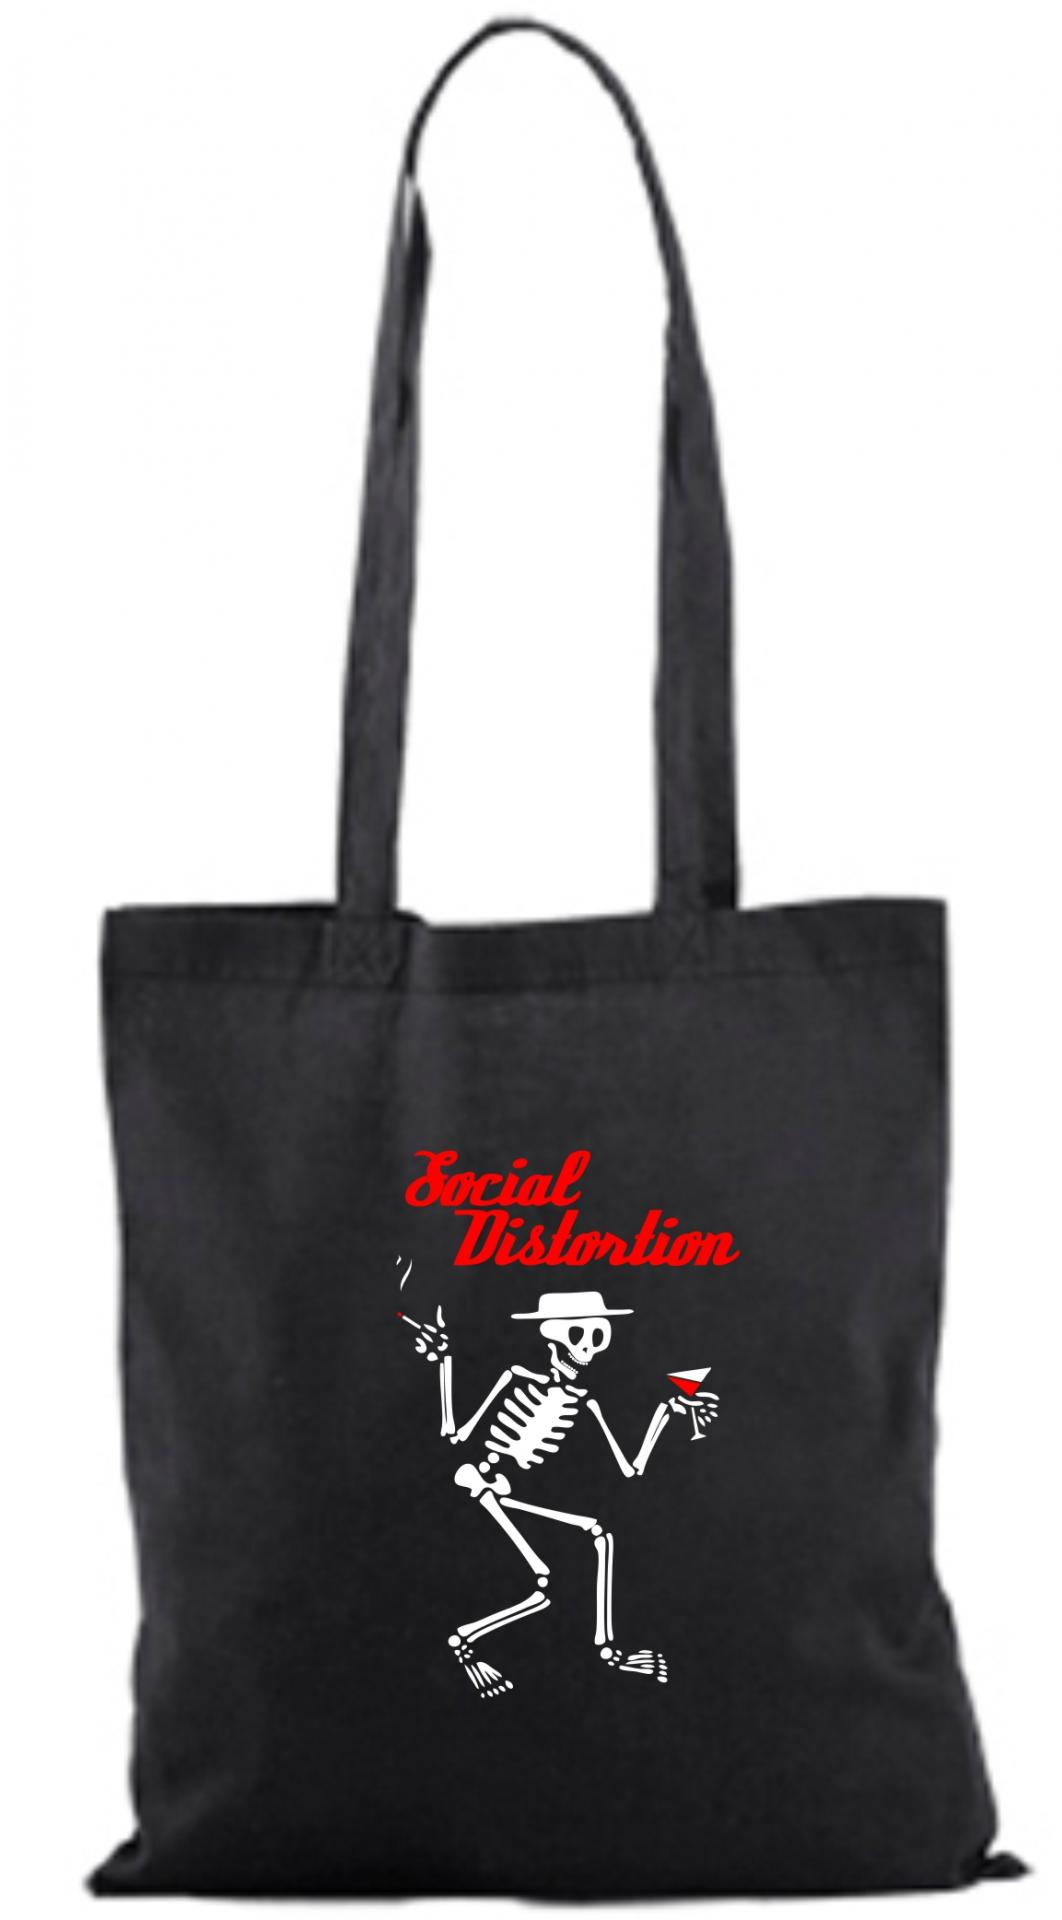 BOLSA ASA LARGA SOCIAL DISTORTION